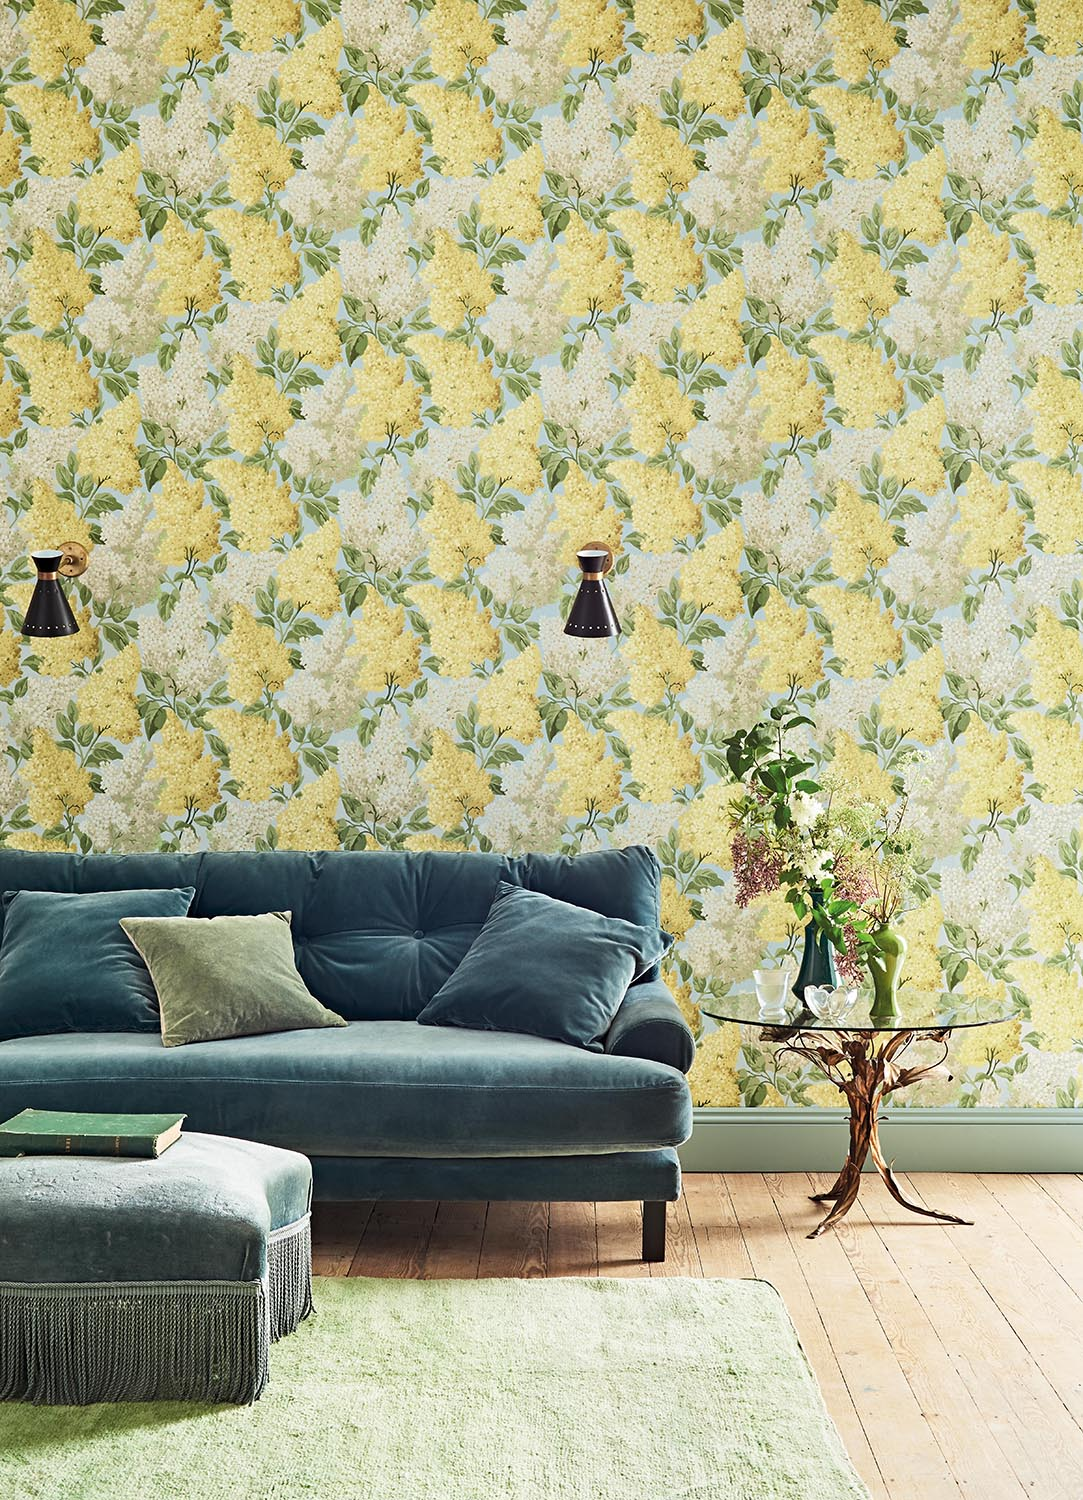 colorful yellow floral wallpaper